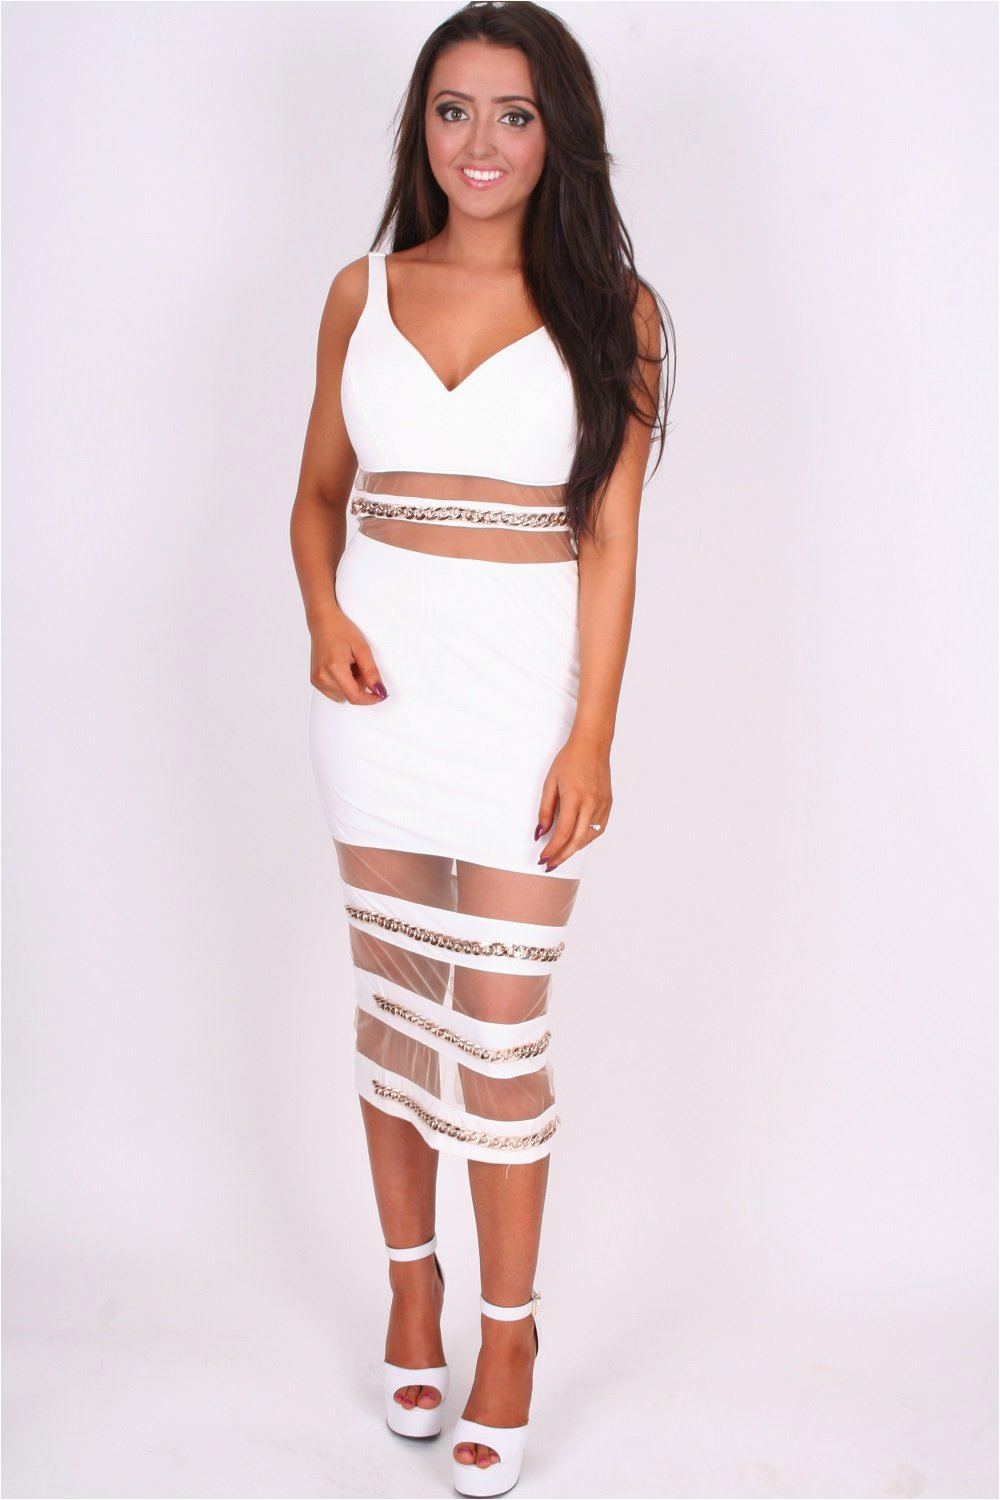 the gallery for gt white and gold bodycon dress